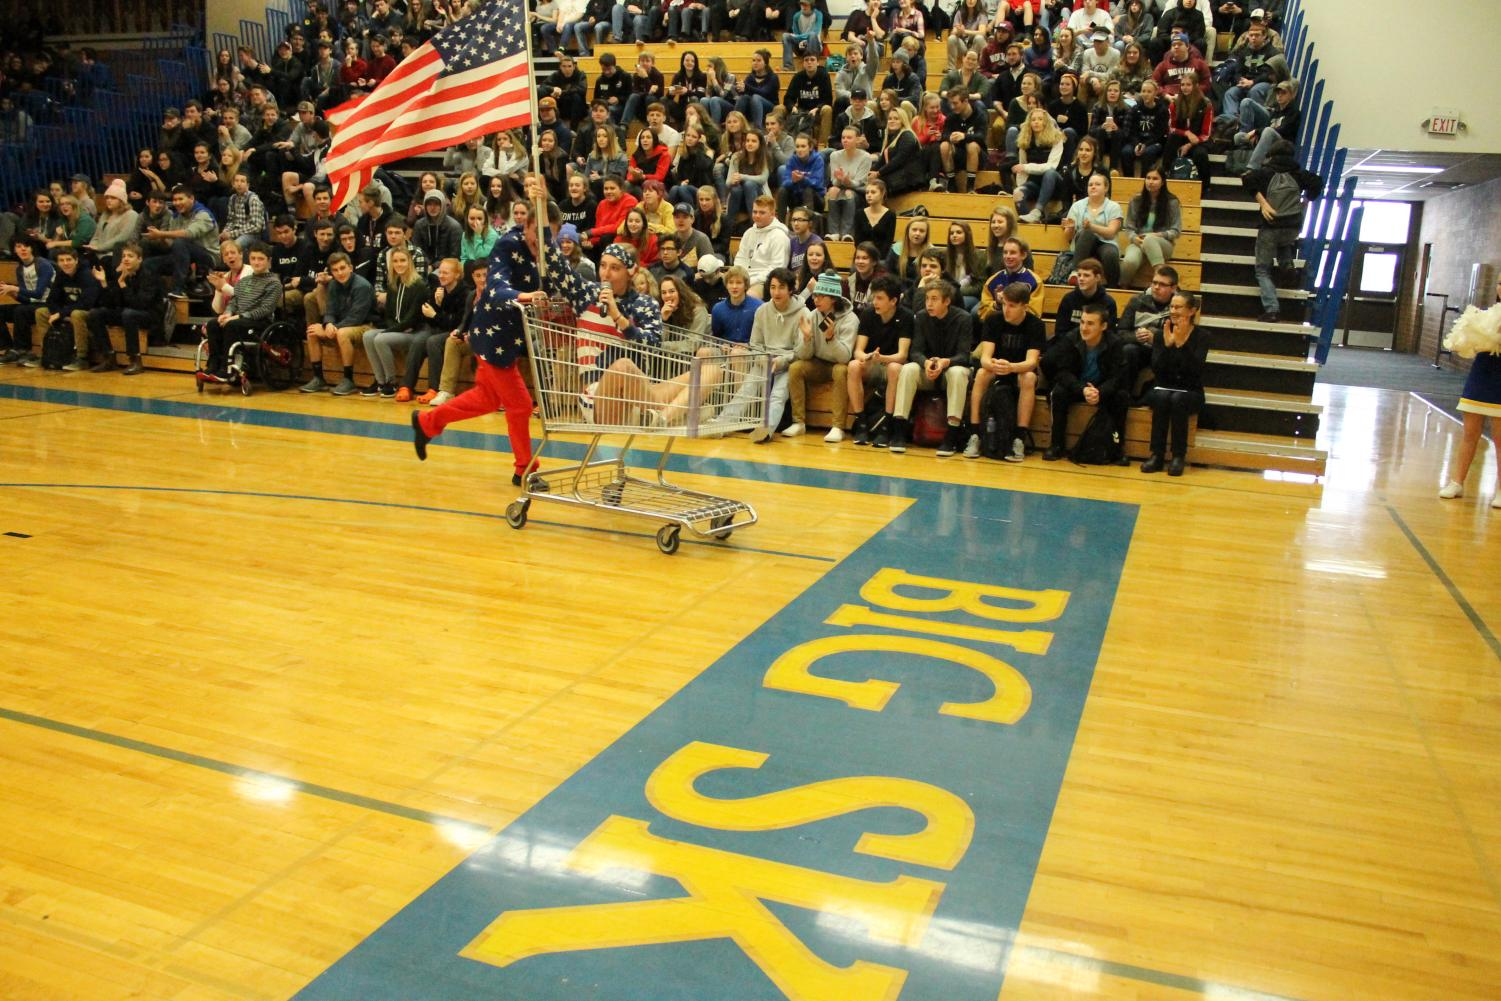 Student body presidents enter using a shopping cart with a United States Flag  and dressed in all American Flag outfits.